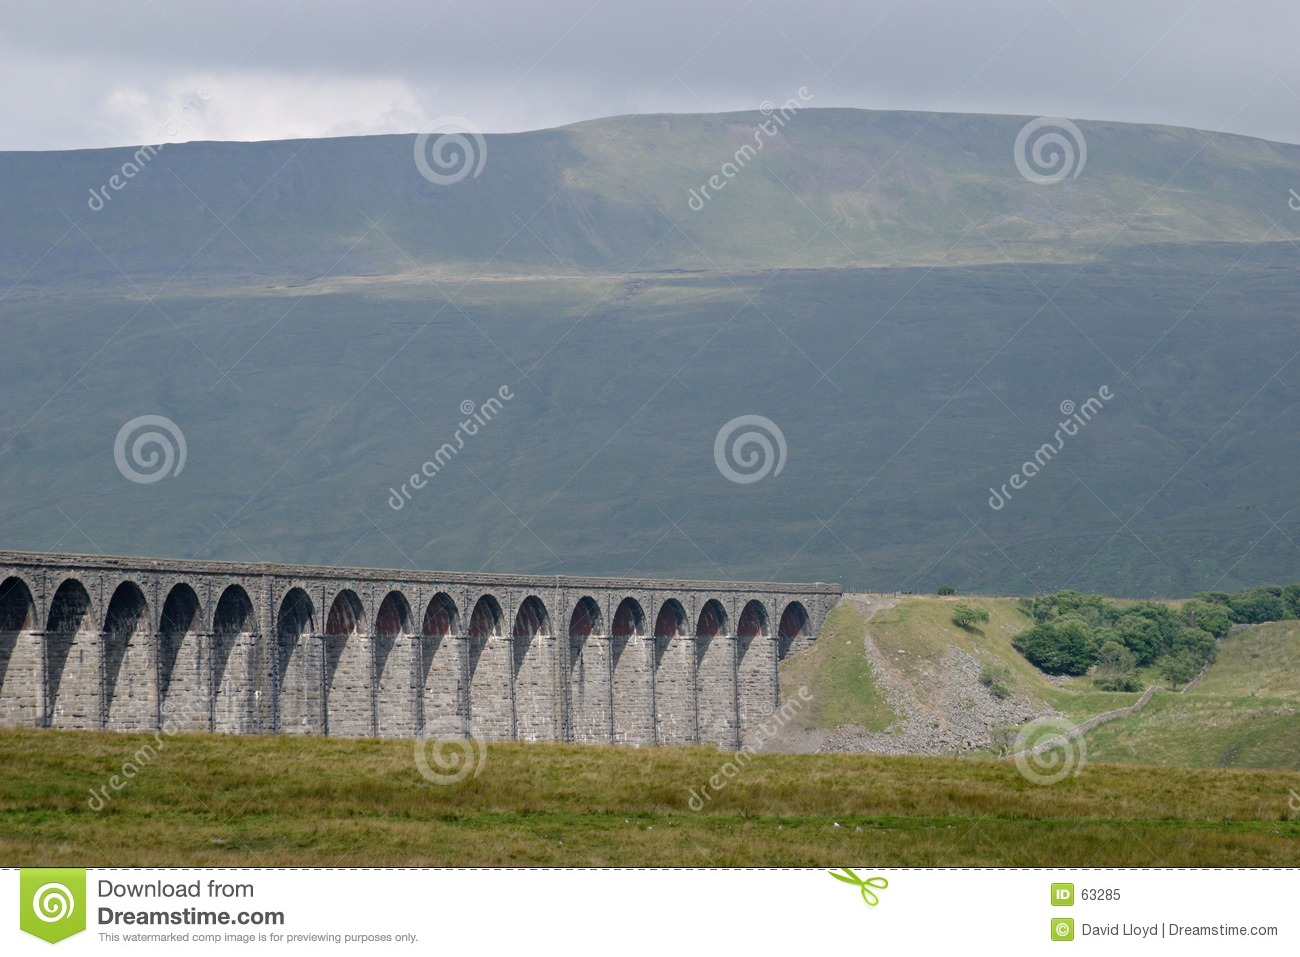 Viaduct de Ribblehead